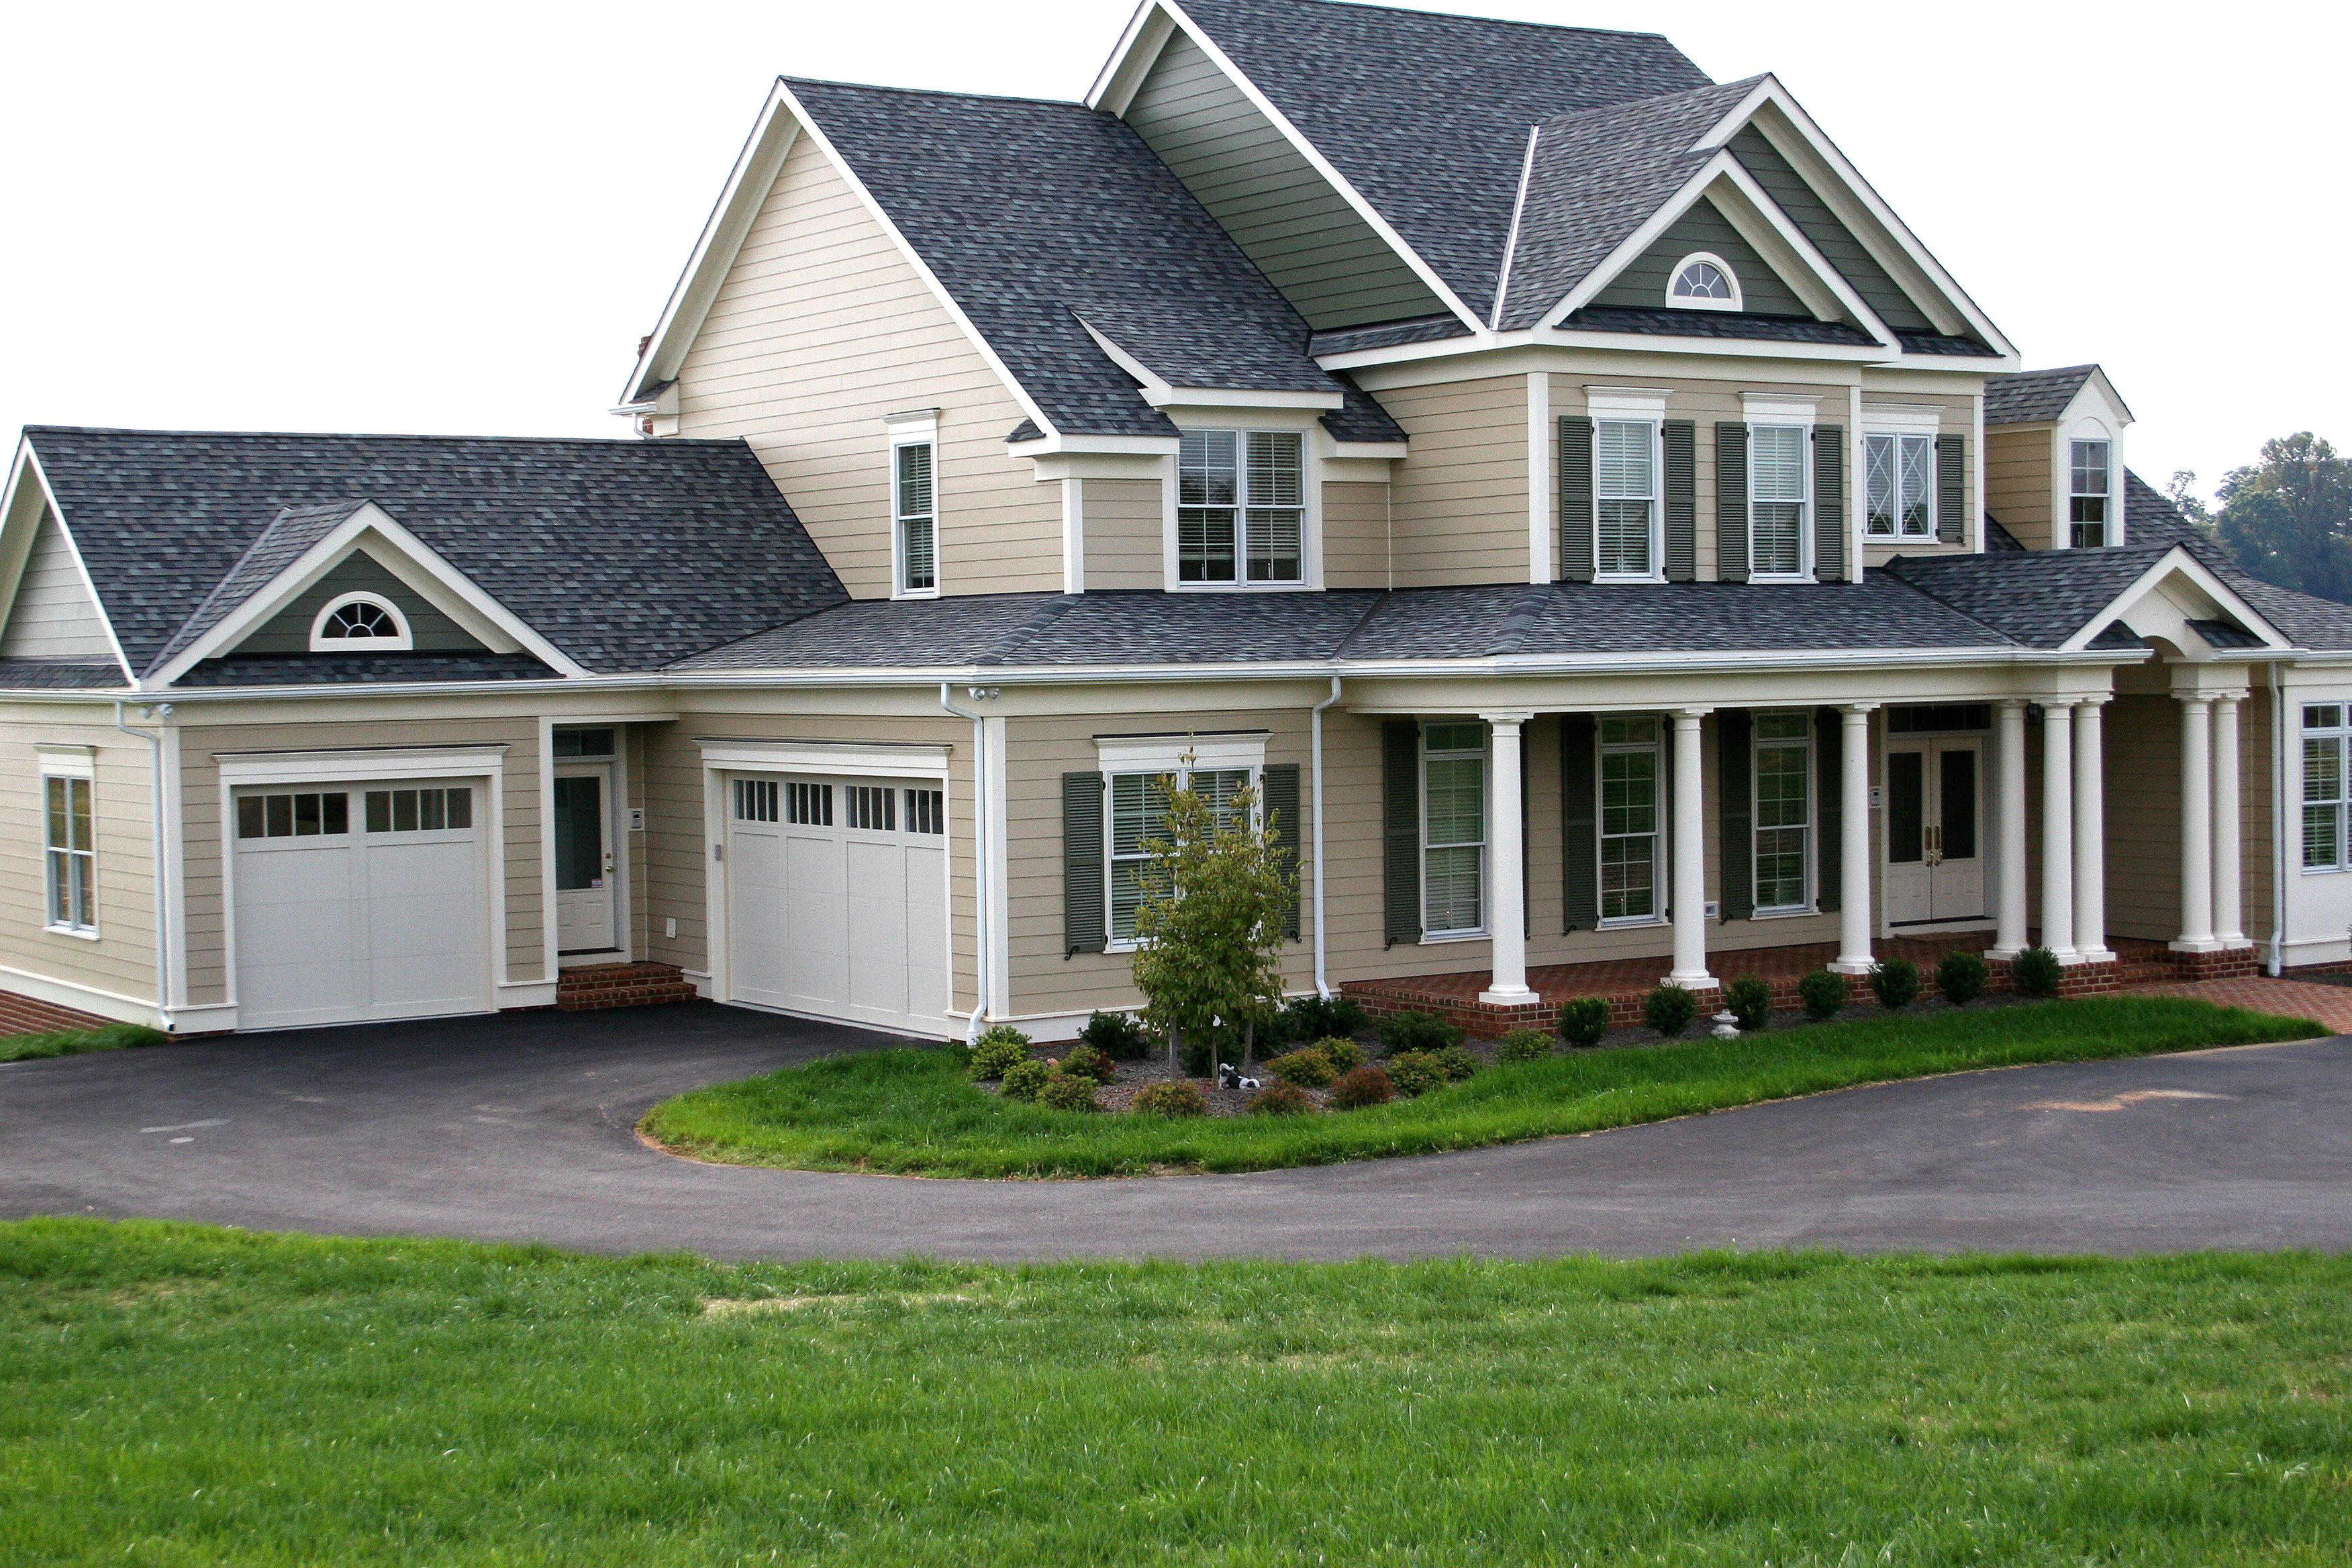 Pin By Mac On Garage Garage Design House Exterior House Styles